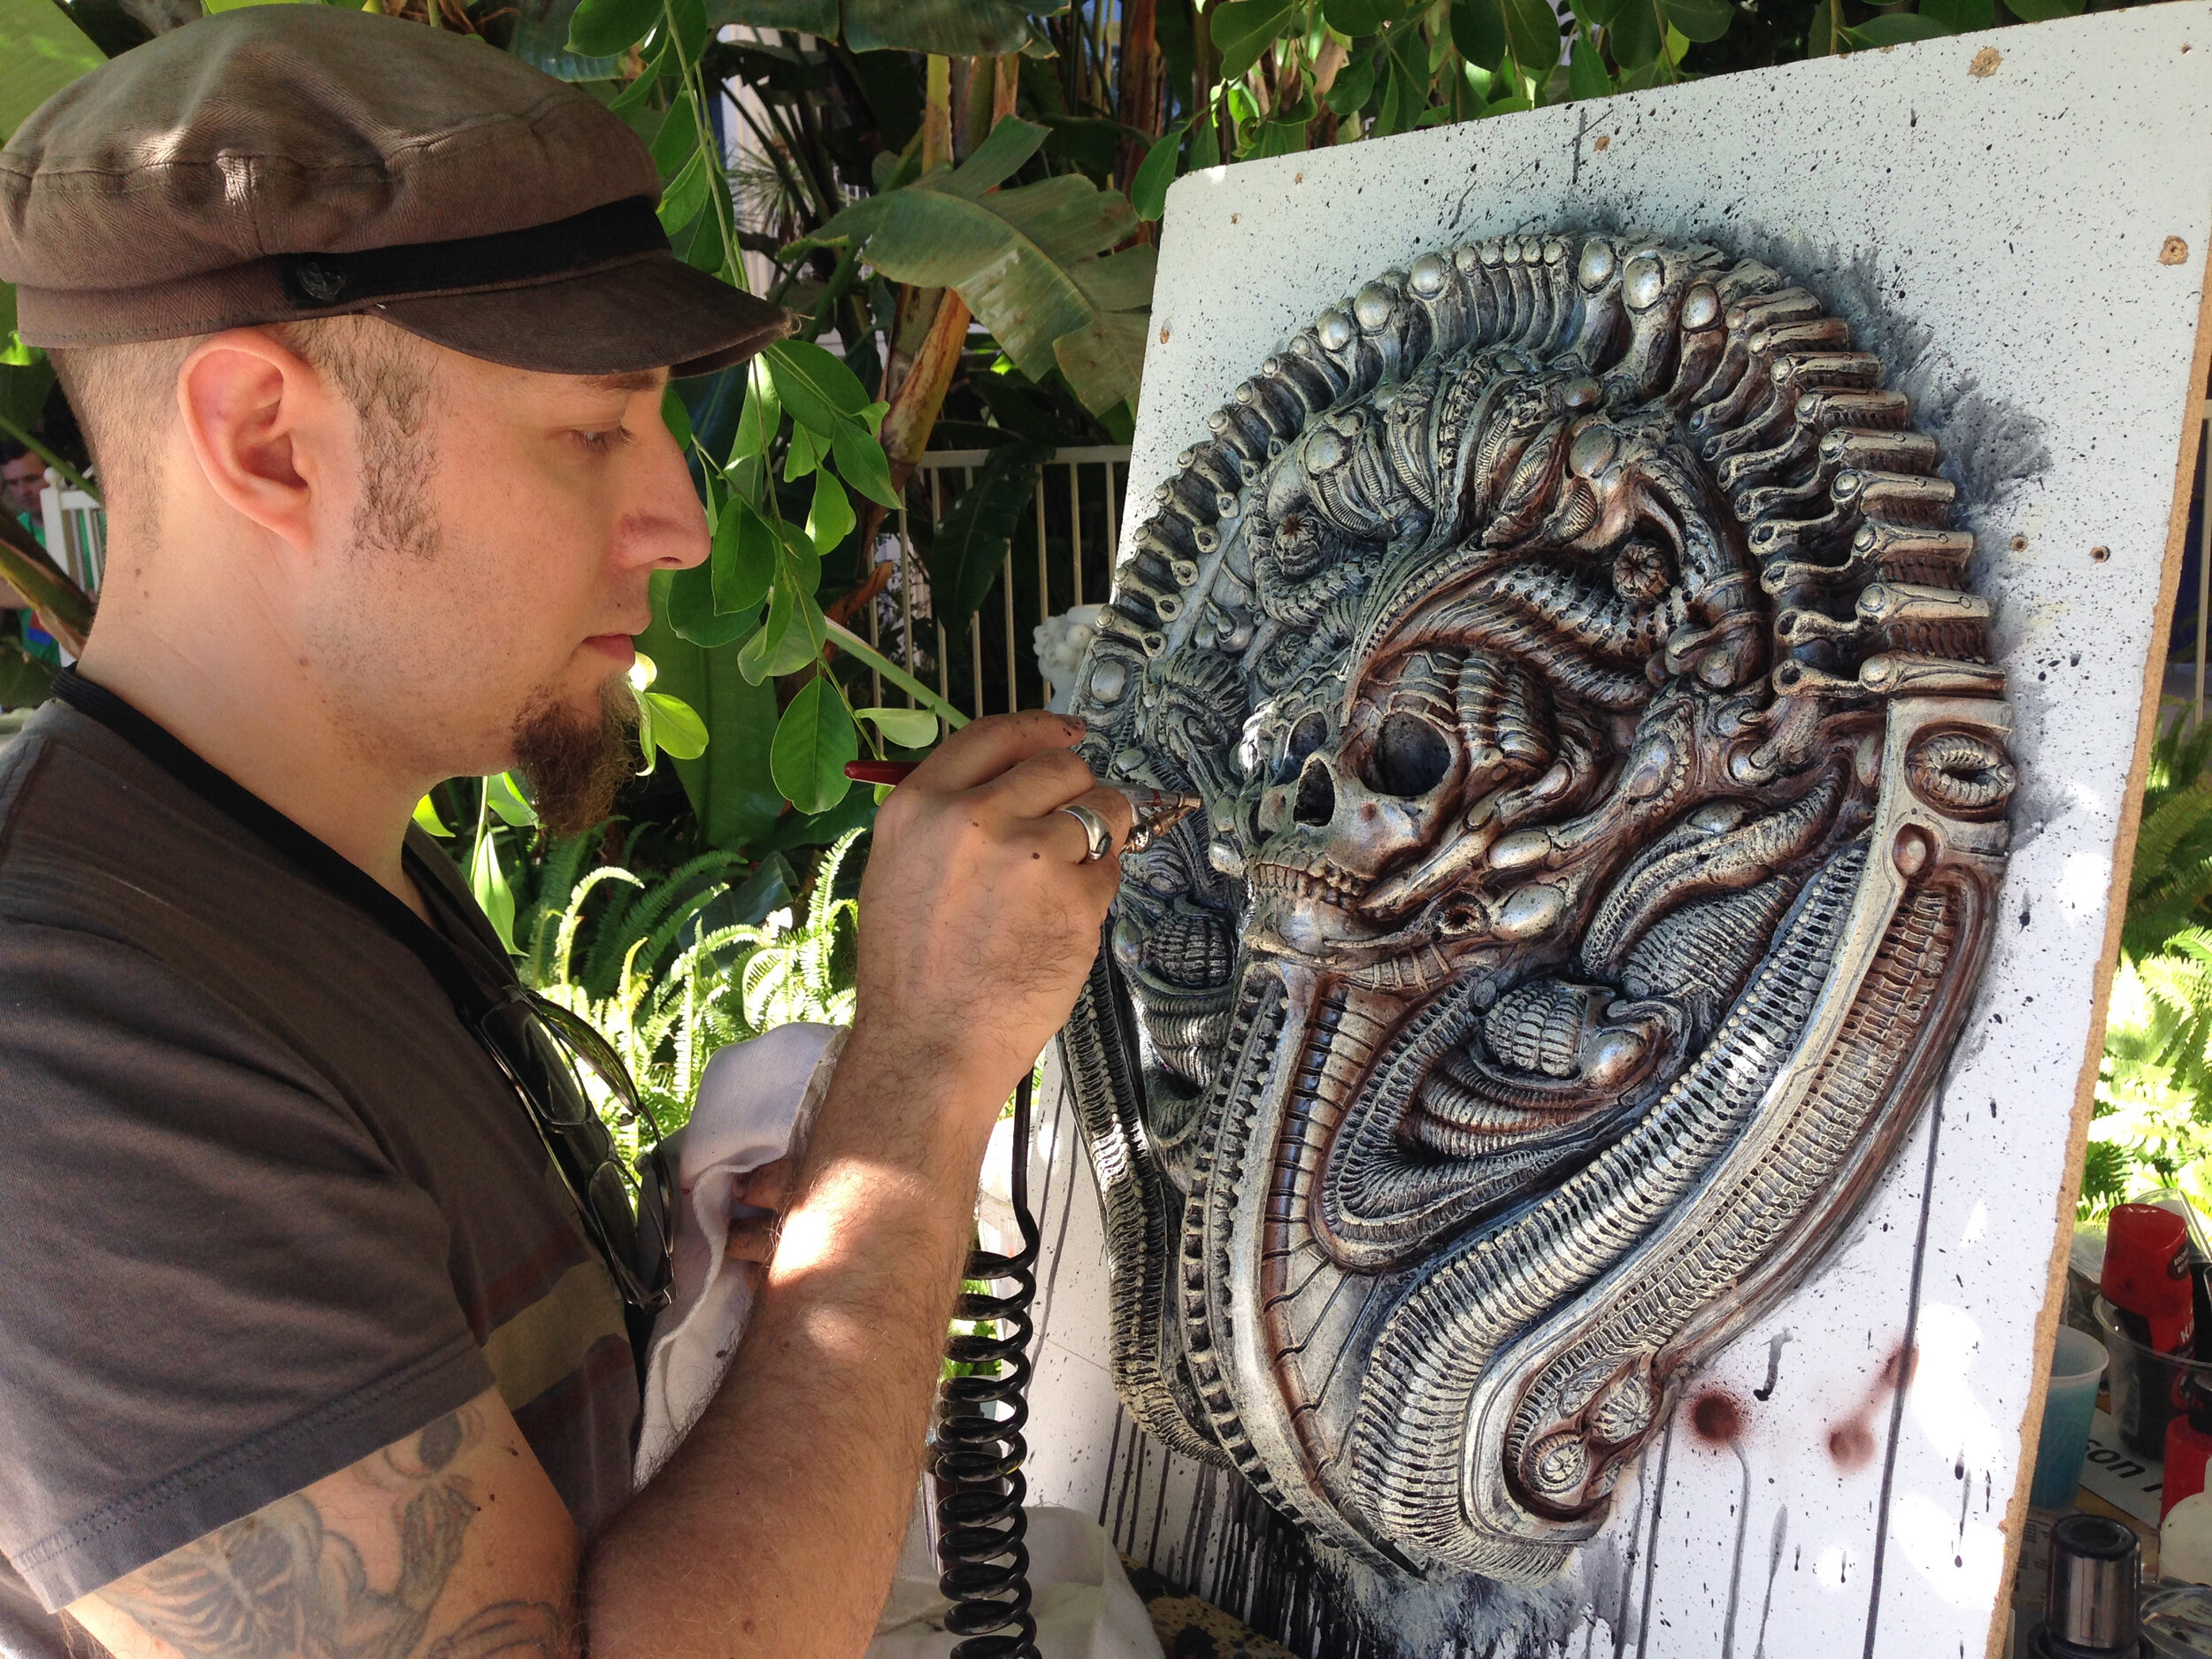 After going through another mold here I am painting one as a live demo at a comic convention in San Diego. This particular piece ended up as a base for Cris Velasco's Shiva (Madonna) sculpture. A bronze version of this piece (the very first image of this thread), hung in the Copro Gallery's Conjoined, curated by Chet Zar in 2013 and was also featured in Juxtapose Magazine for promoting that gallery show.